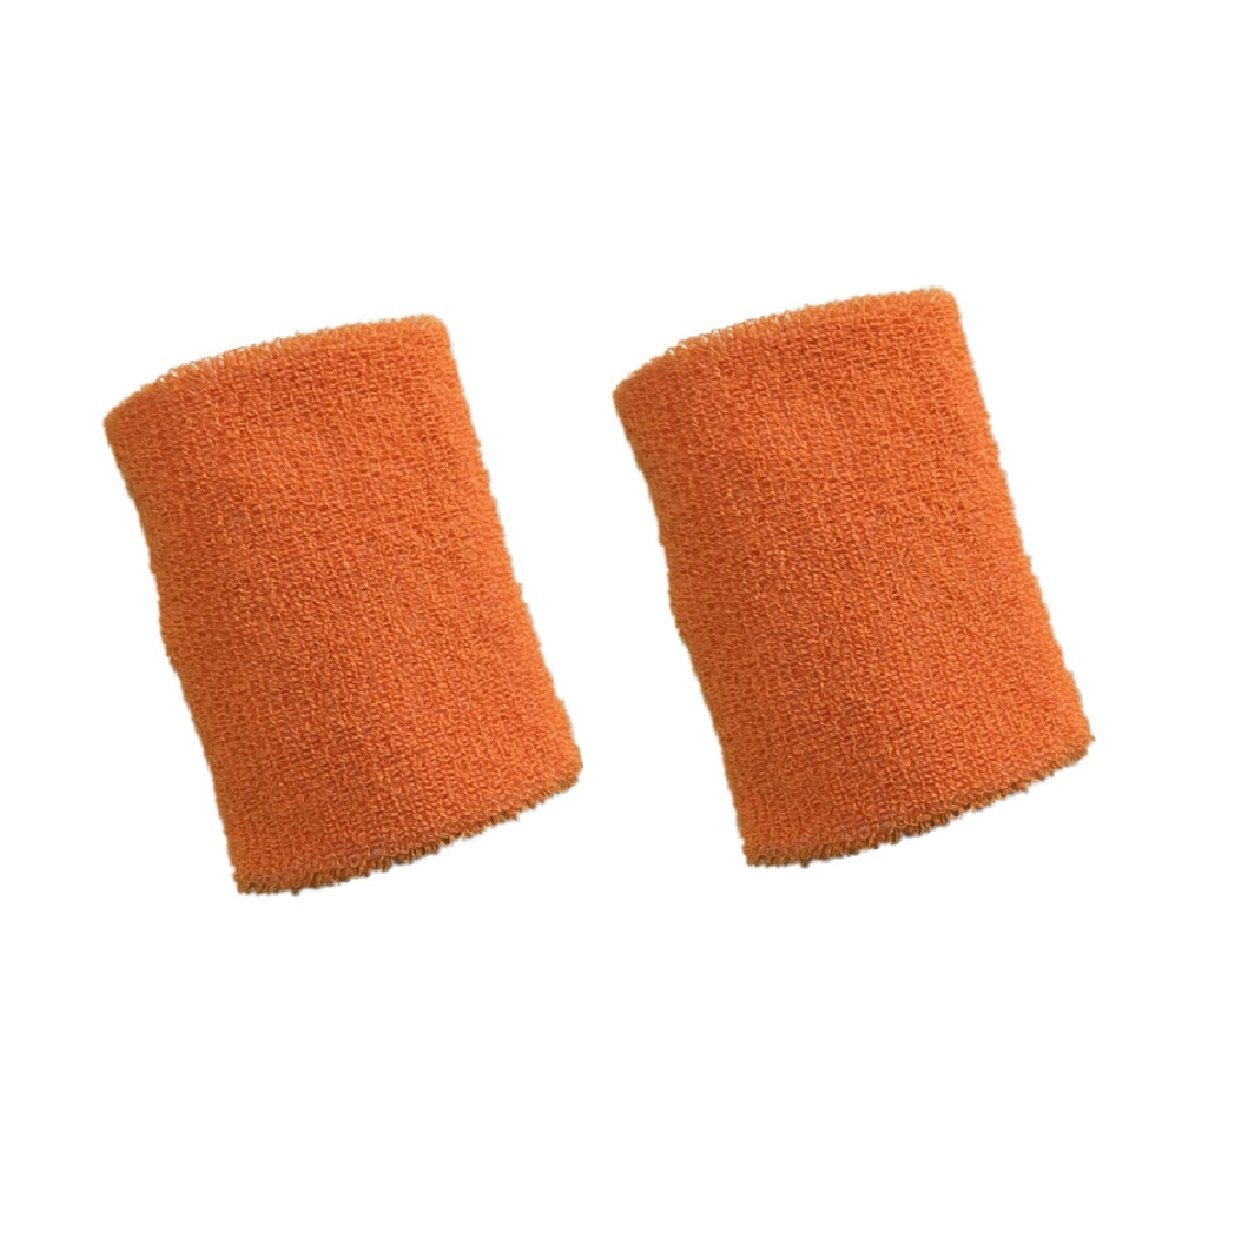 1 Pair Mcolics 4 Inch Wrist Sweatband in 11 Athletic Cotton Wristbands Armbands